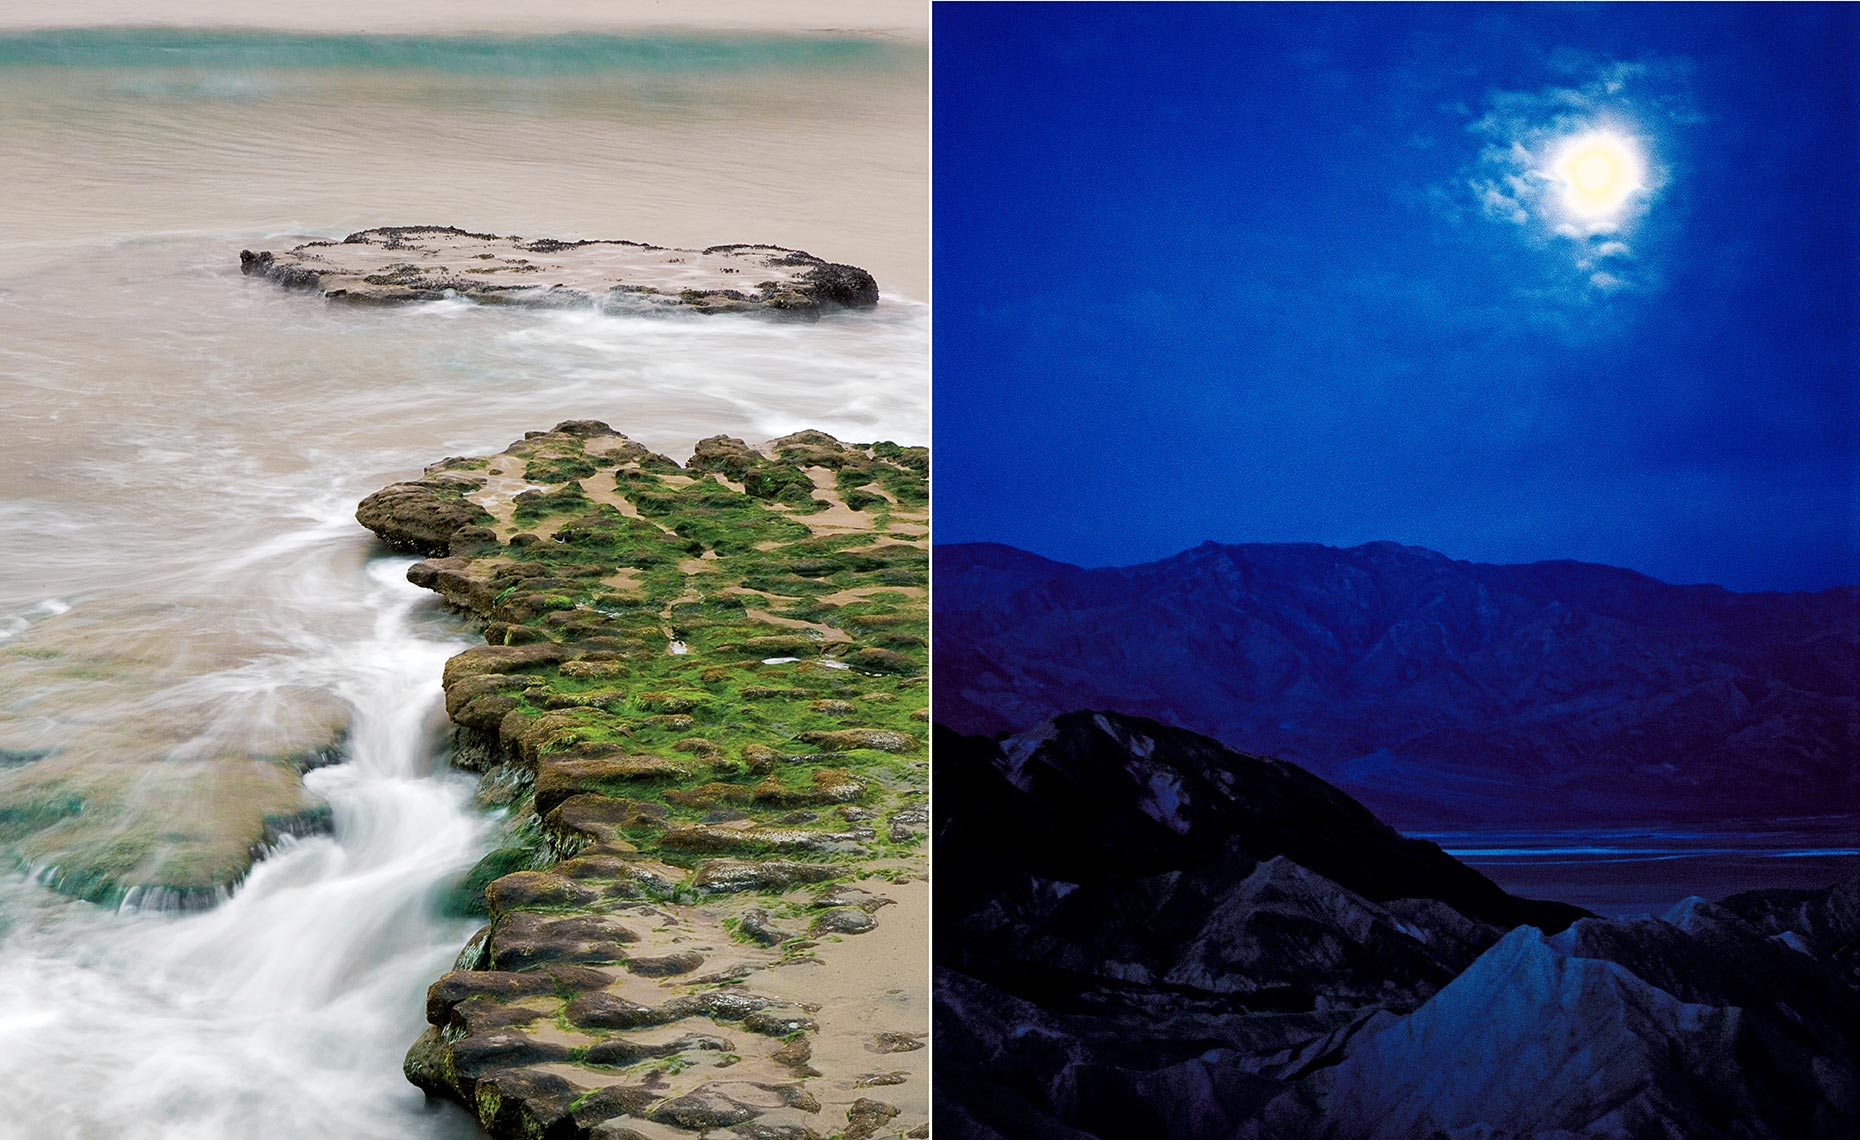 19_Swamis_Zabriske_Point_Death_Valley_California_Bluemoon_Millenium_Environment_Landscape_Chris_Wellhausen_Photography.JPG